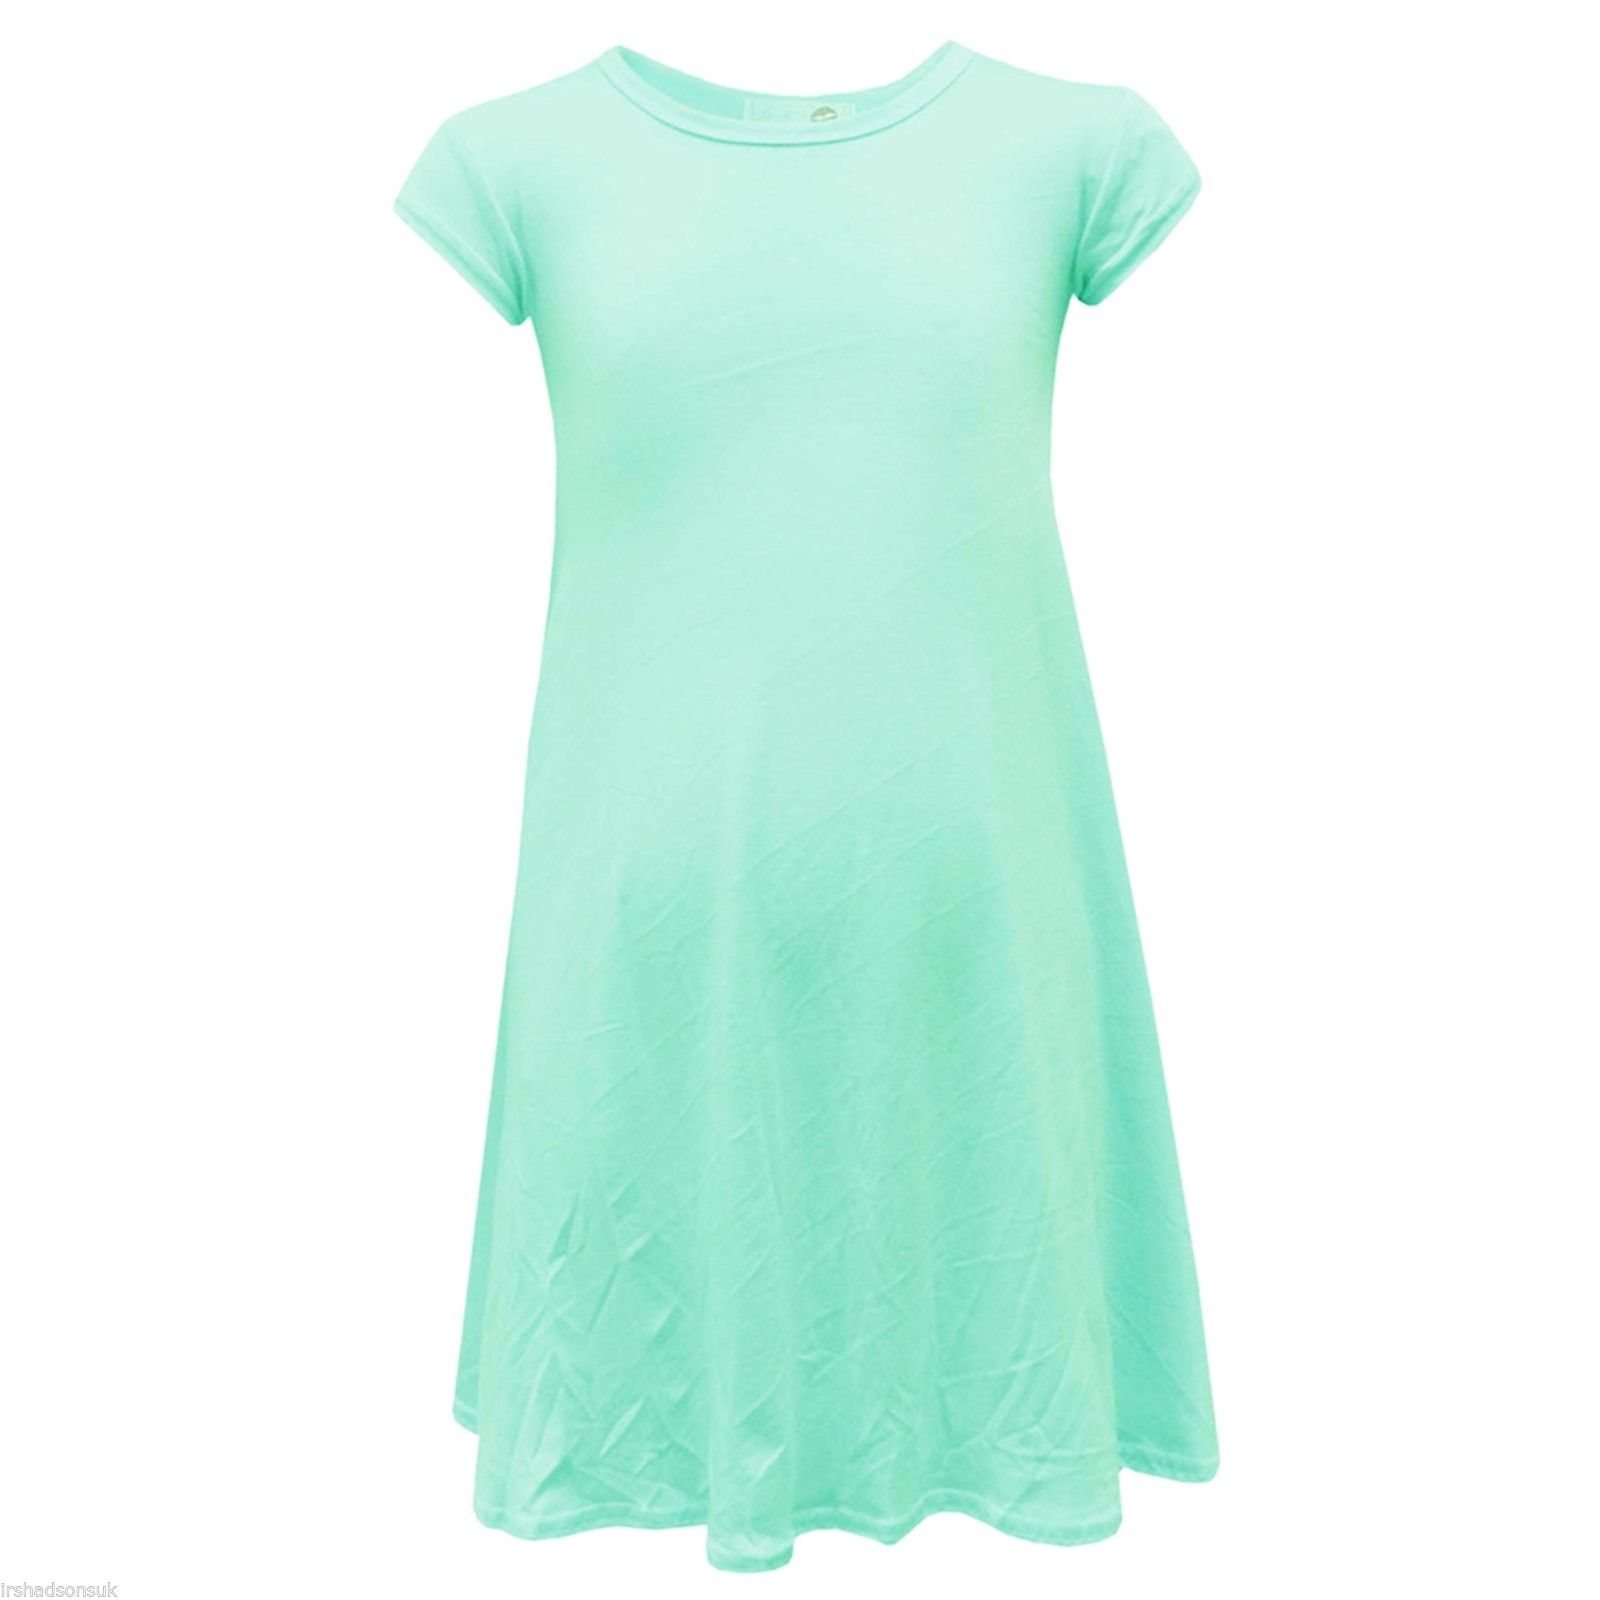 NEW KIDS GIRLS PLAIN MIDI SWING WATERFALL DRESS NEW SEASON STYLE SIZE 7-13 YEARS